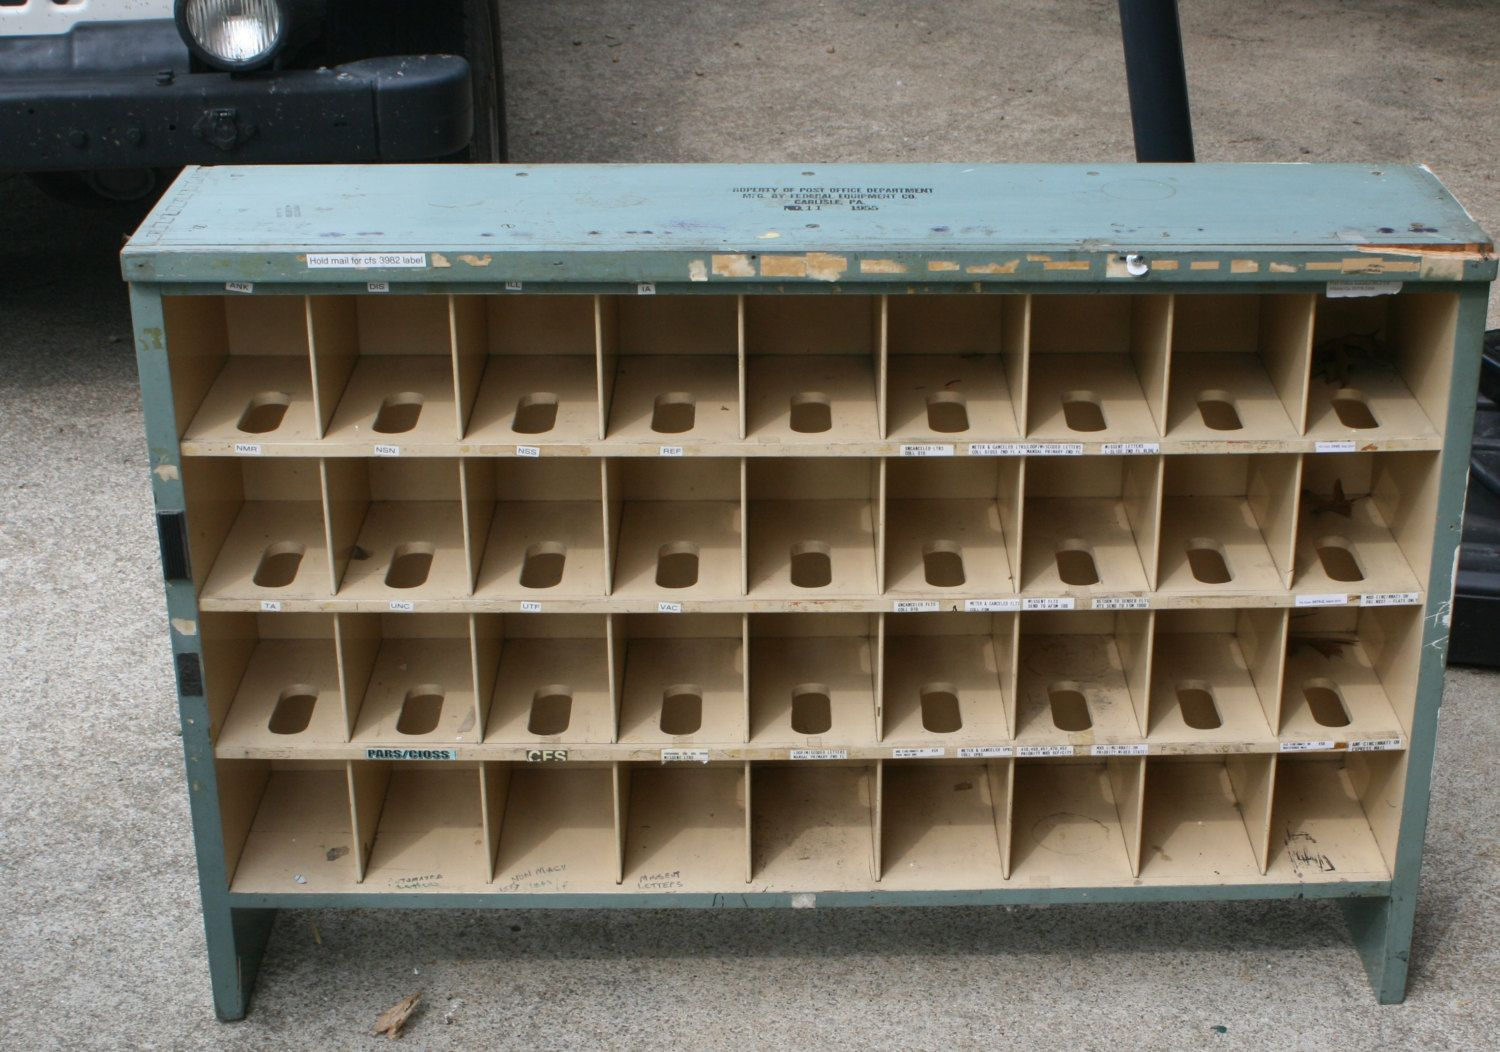 Vintage Post Office Desk Cubby Holes Storage Sort Bins By Bluebirdcreekvintage On Etsy